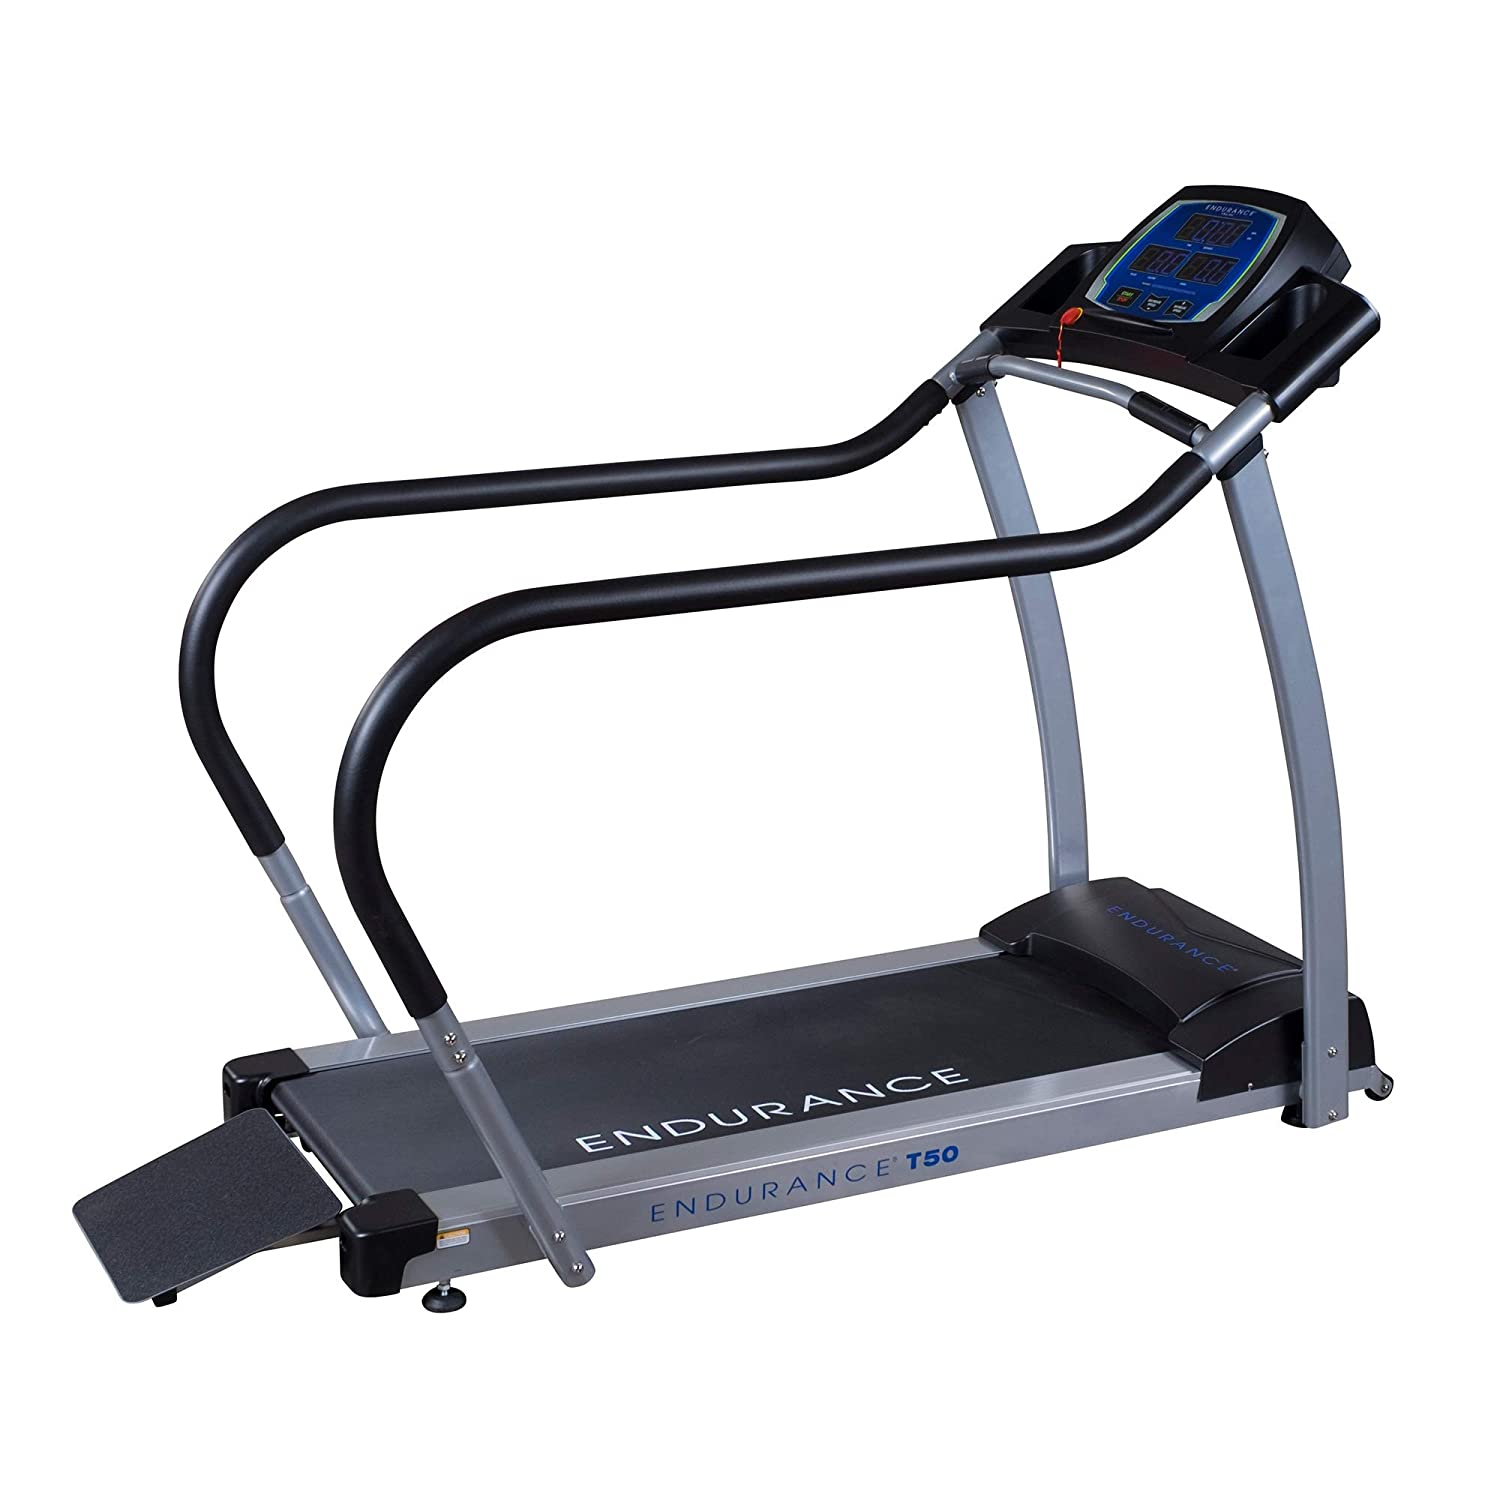 Body-Solid Endurance Rehabilitation Treadmill T50